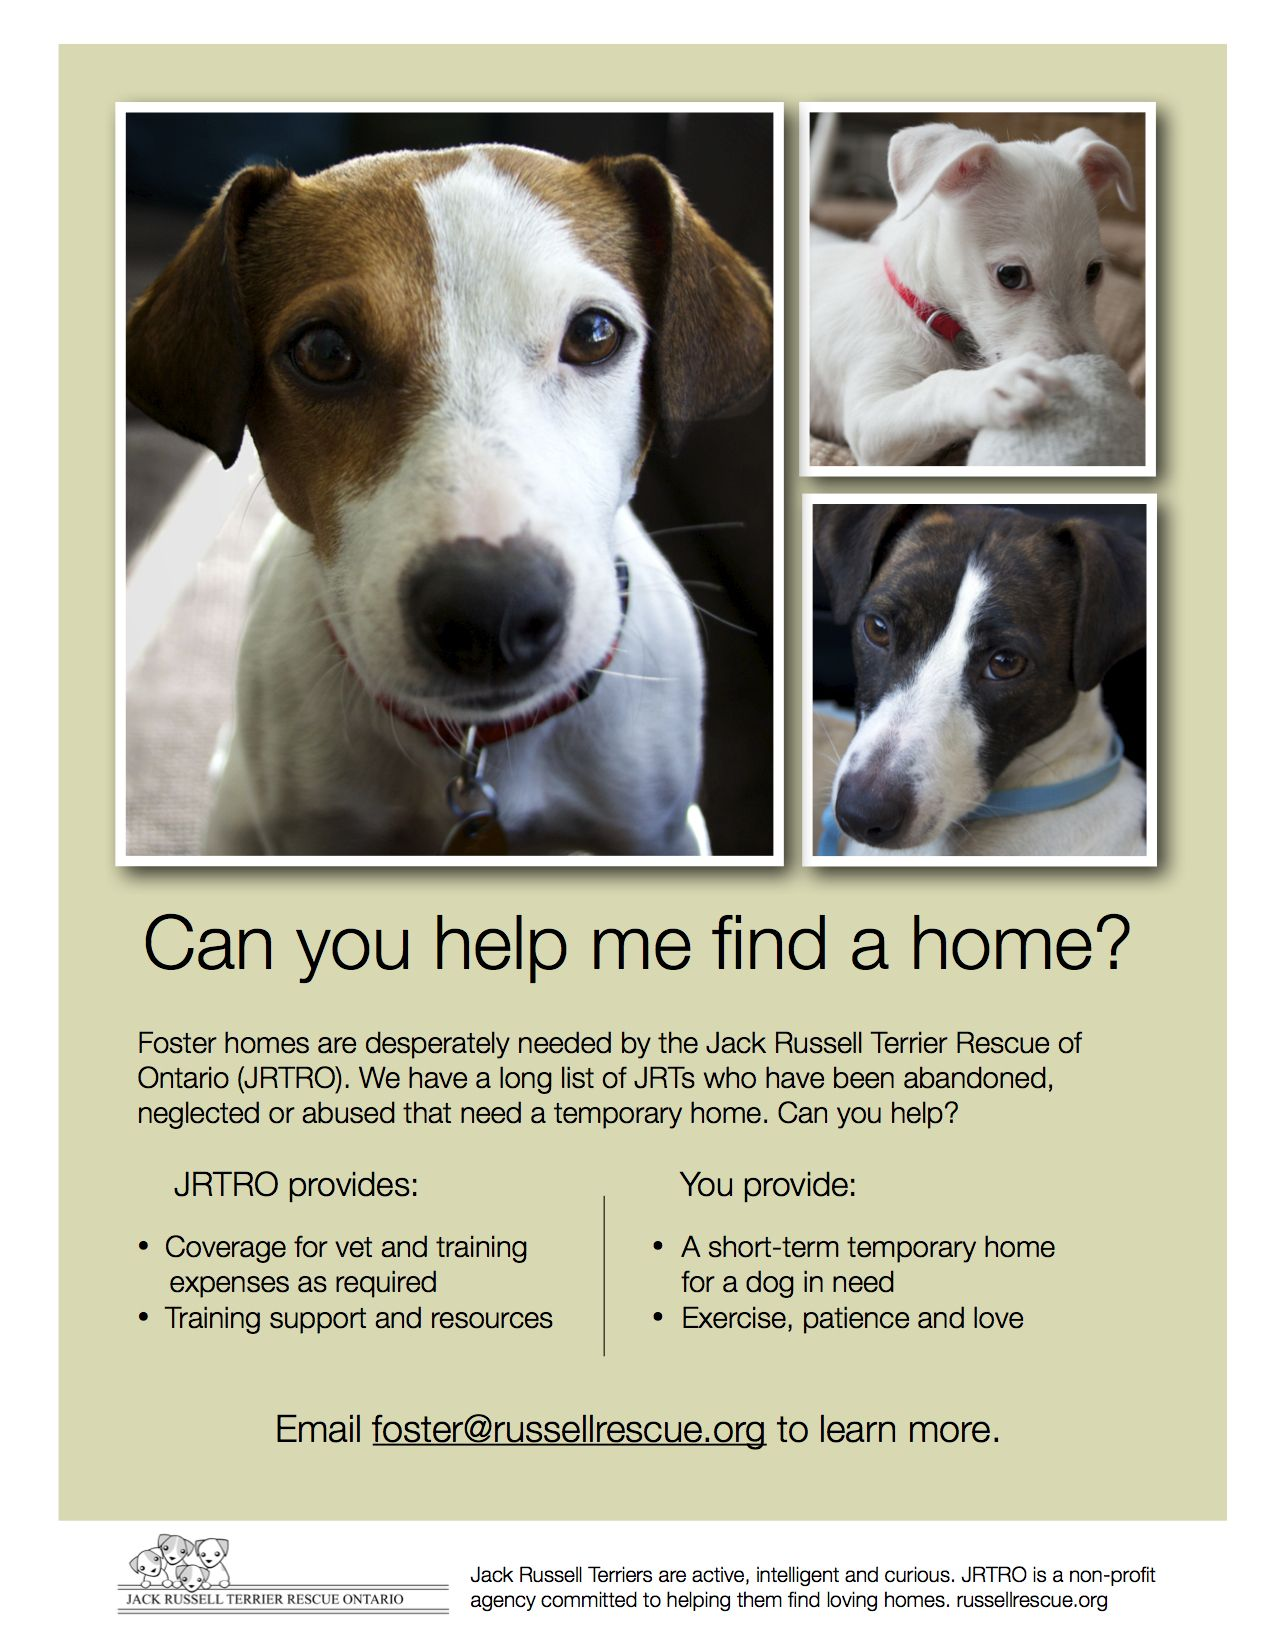 Jack Russell Terrier Rescue Ontario